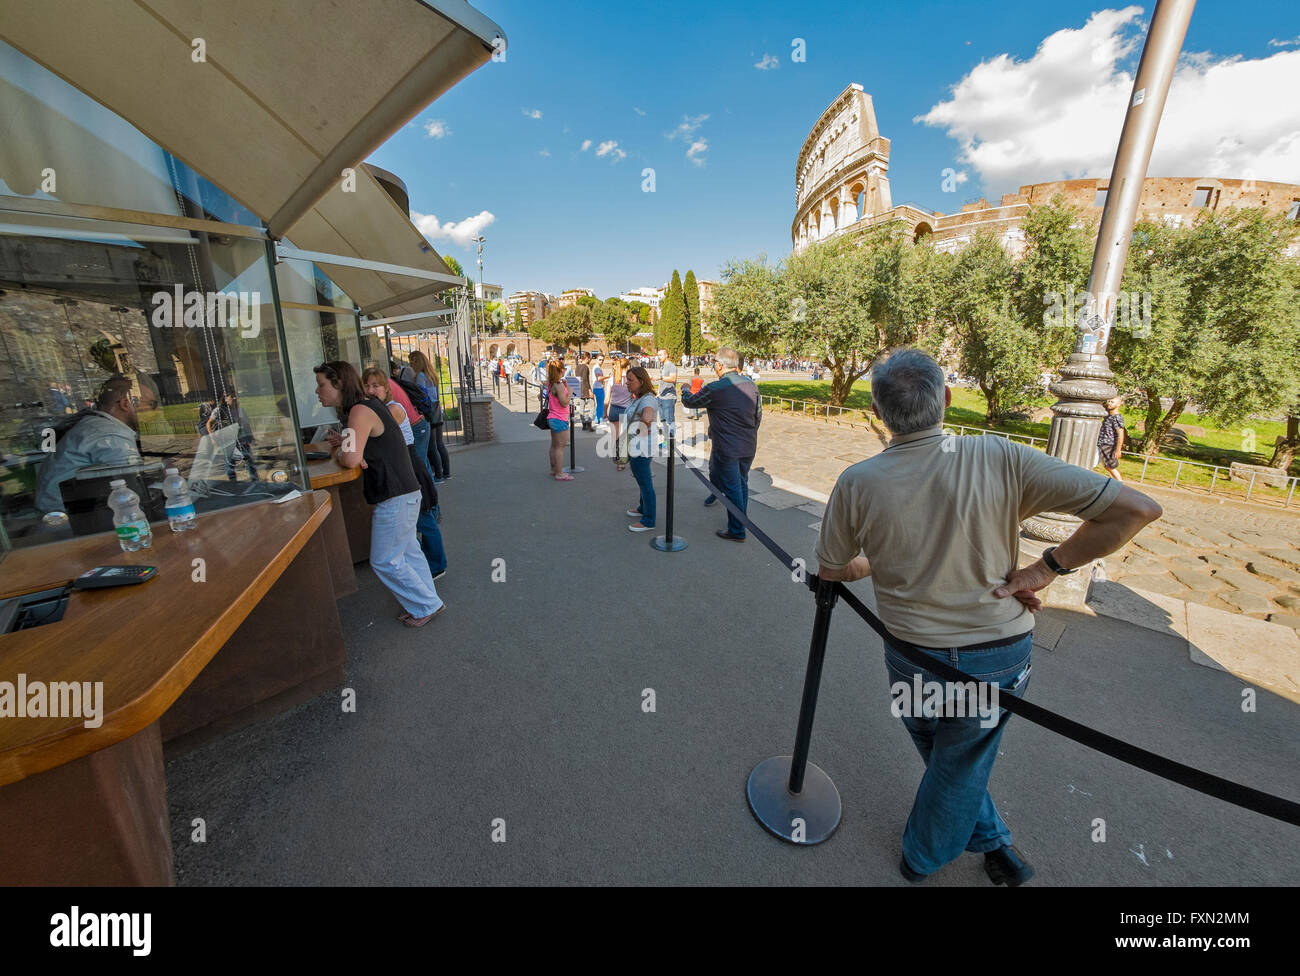 queuing at the Roman Colosseum - Stock Image